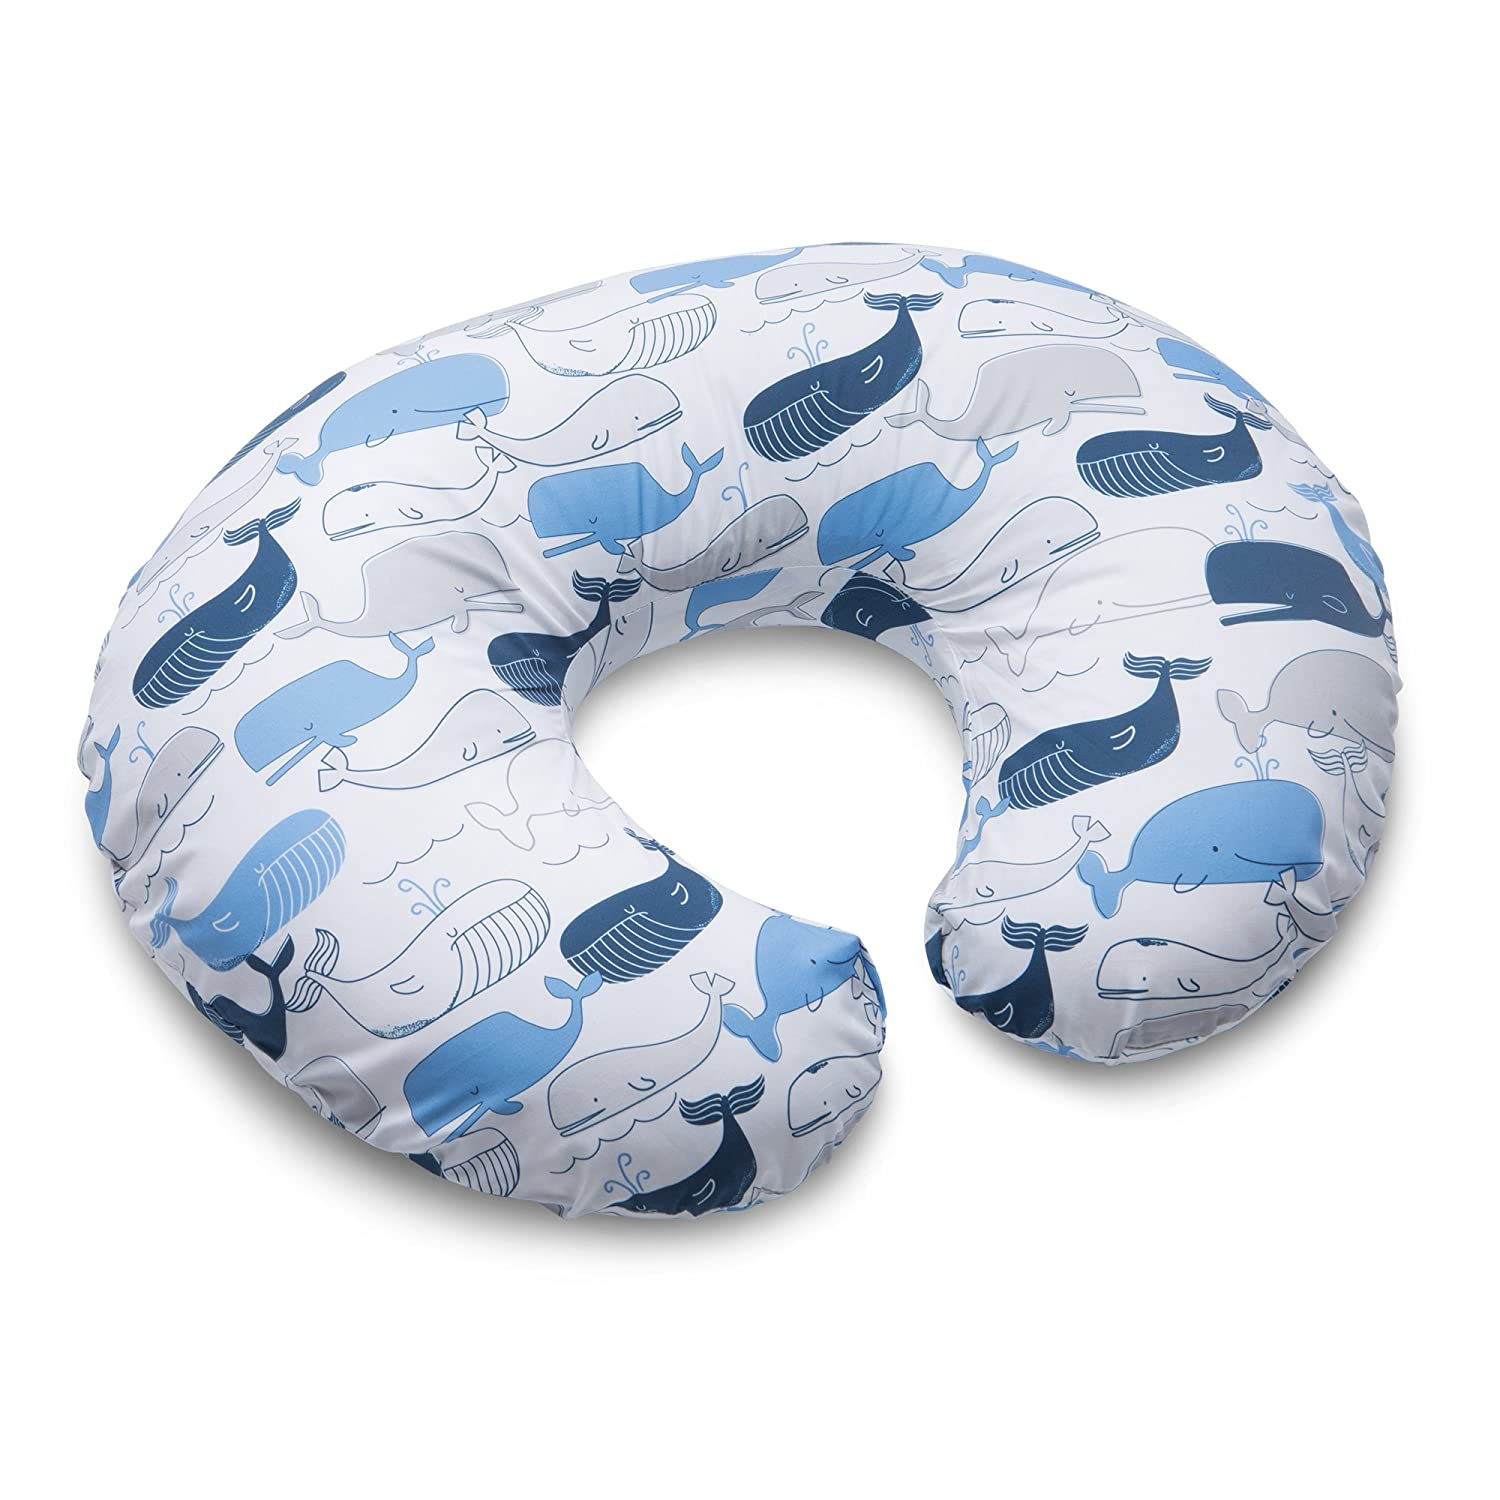 Boppy Nursing Pillow and Positioner, Big Whale Blue and Gray The Boppy Company 2200708K AMZ